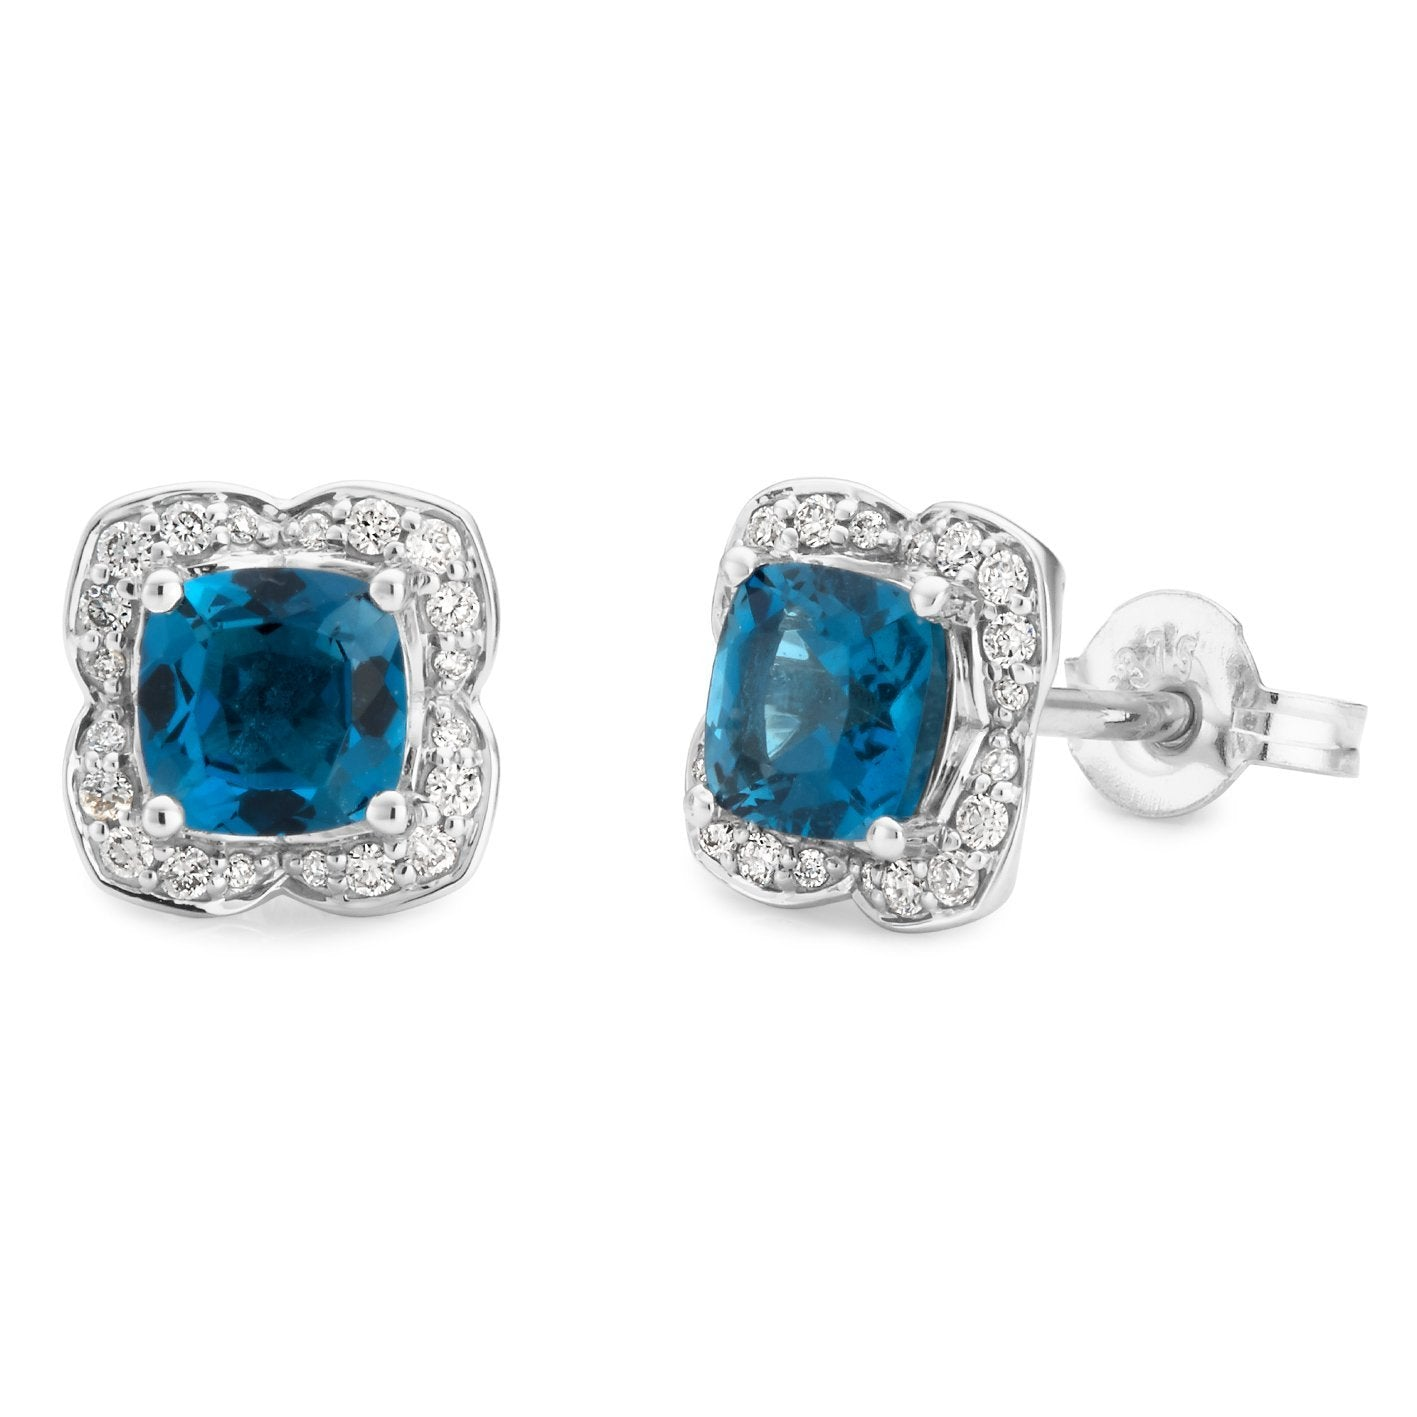 London Blue Topaz & Diamond Claw/Bead Set Stud Earrings in 9ct White Gold